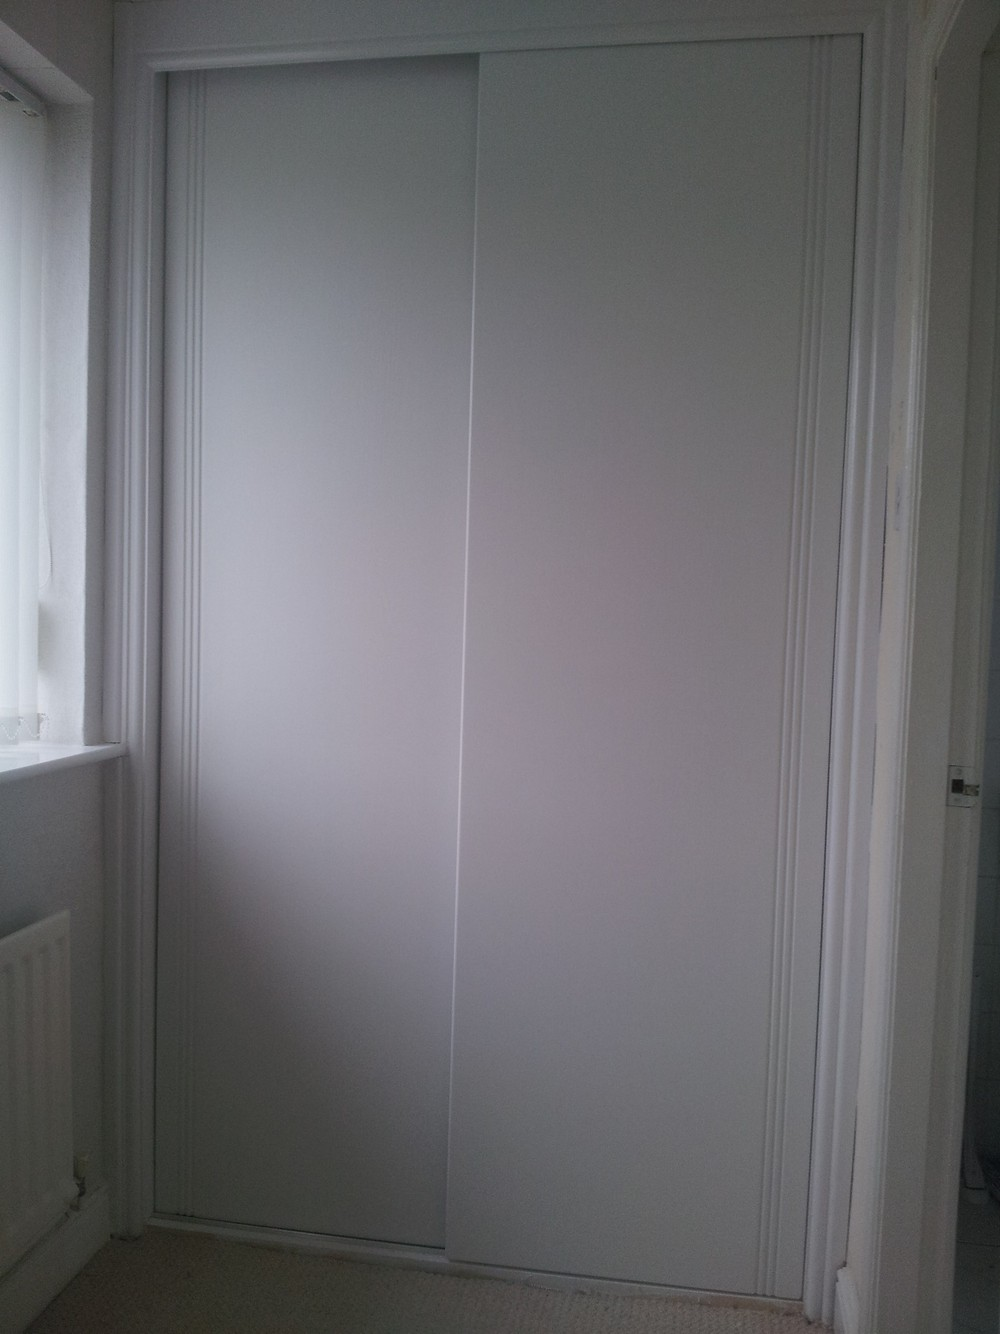 wardrobe doors replacement wardrobe doors fitted. Black Bedroom Furniture Sets. Home Design Ideas